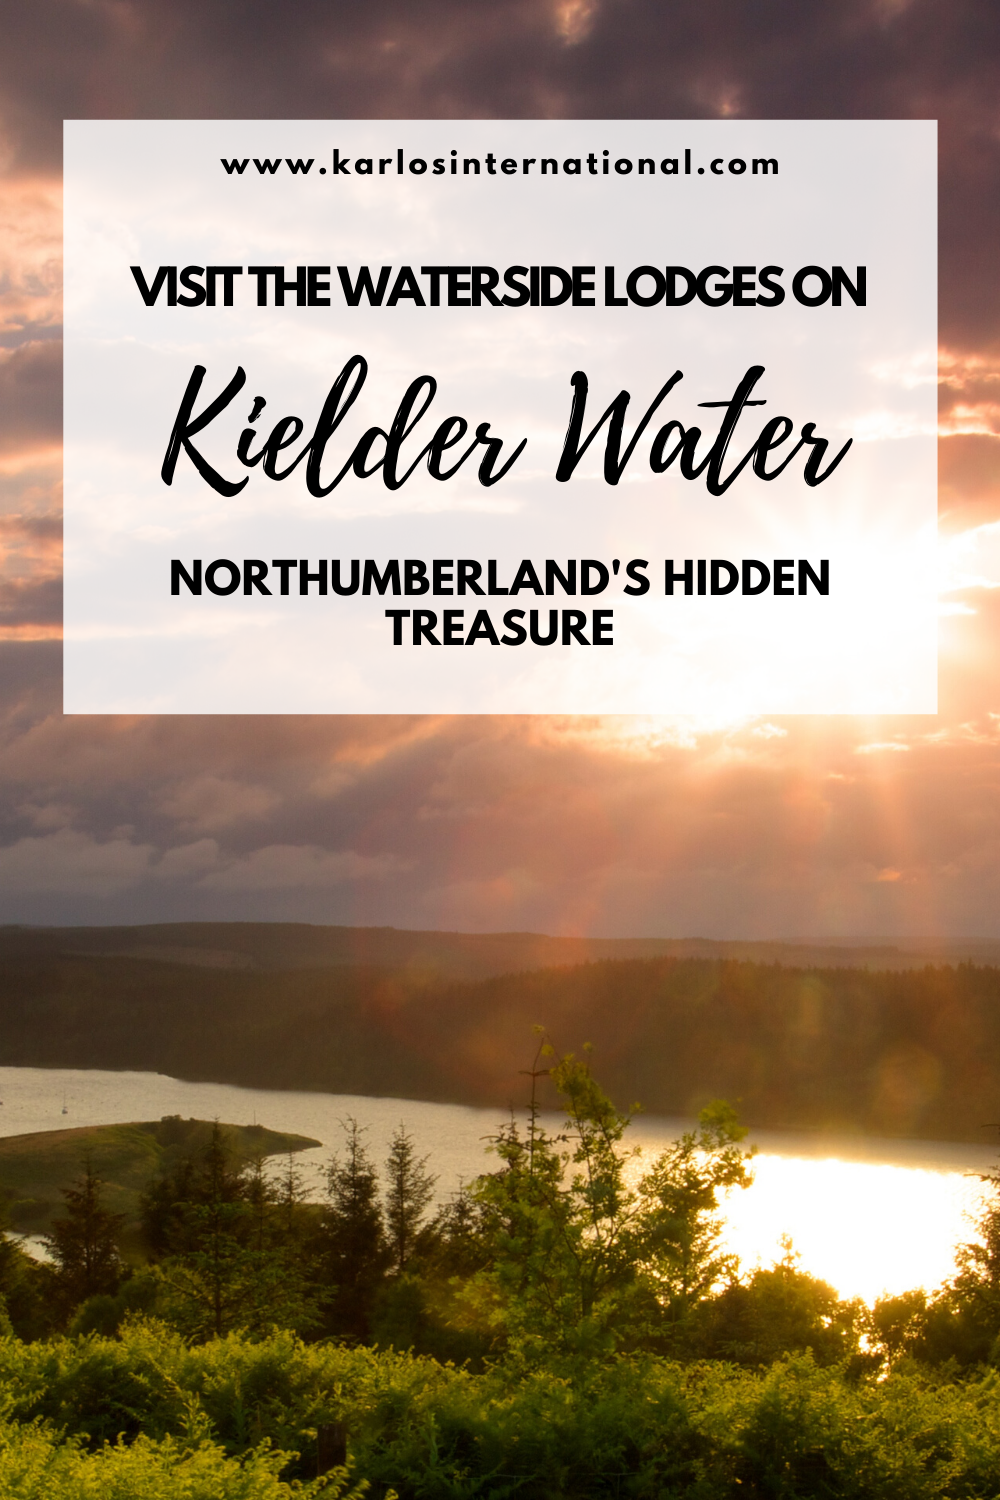 Visit the waterside lodges on Kielder Water - Northumberland's secret hideaway